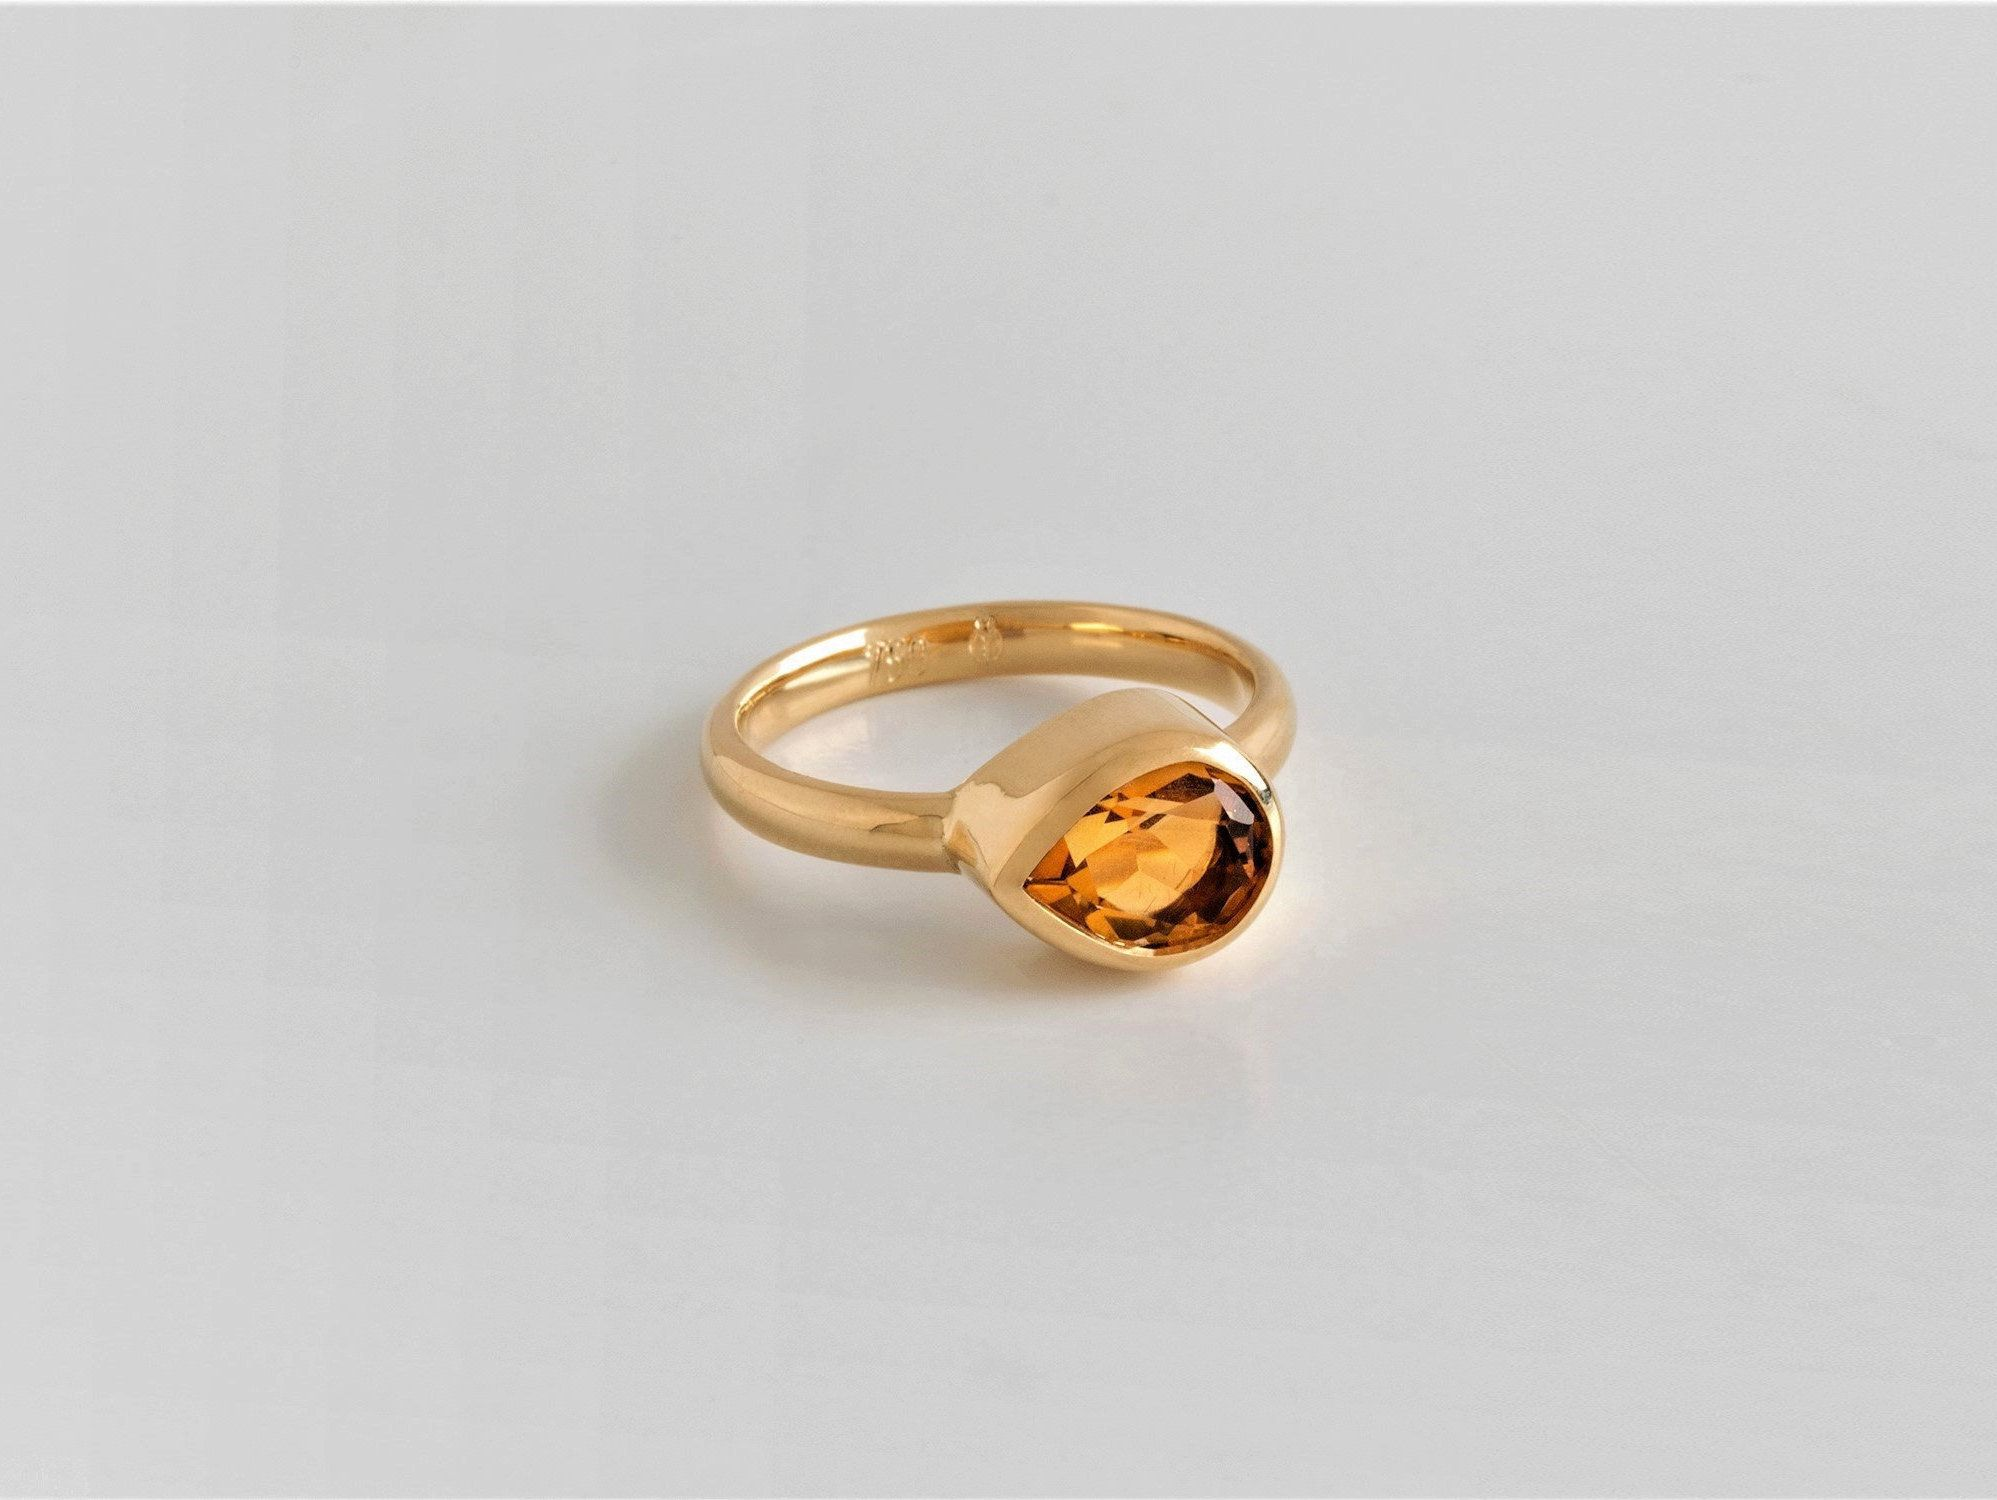 Citrine Ring Prong Ring Gemstone Ring November Birthstone Gits for Women Argentium Sterling Silver Ring Yellow Ring Solitaire Ring